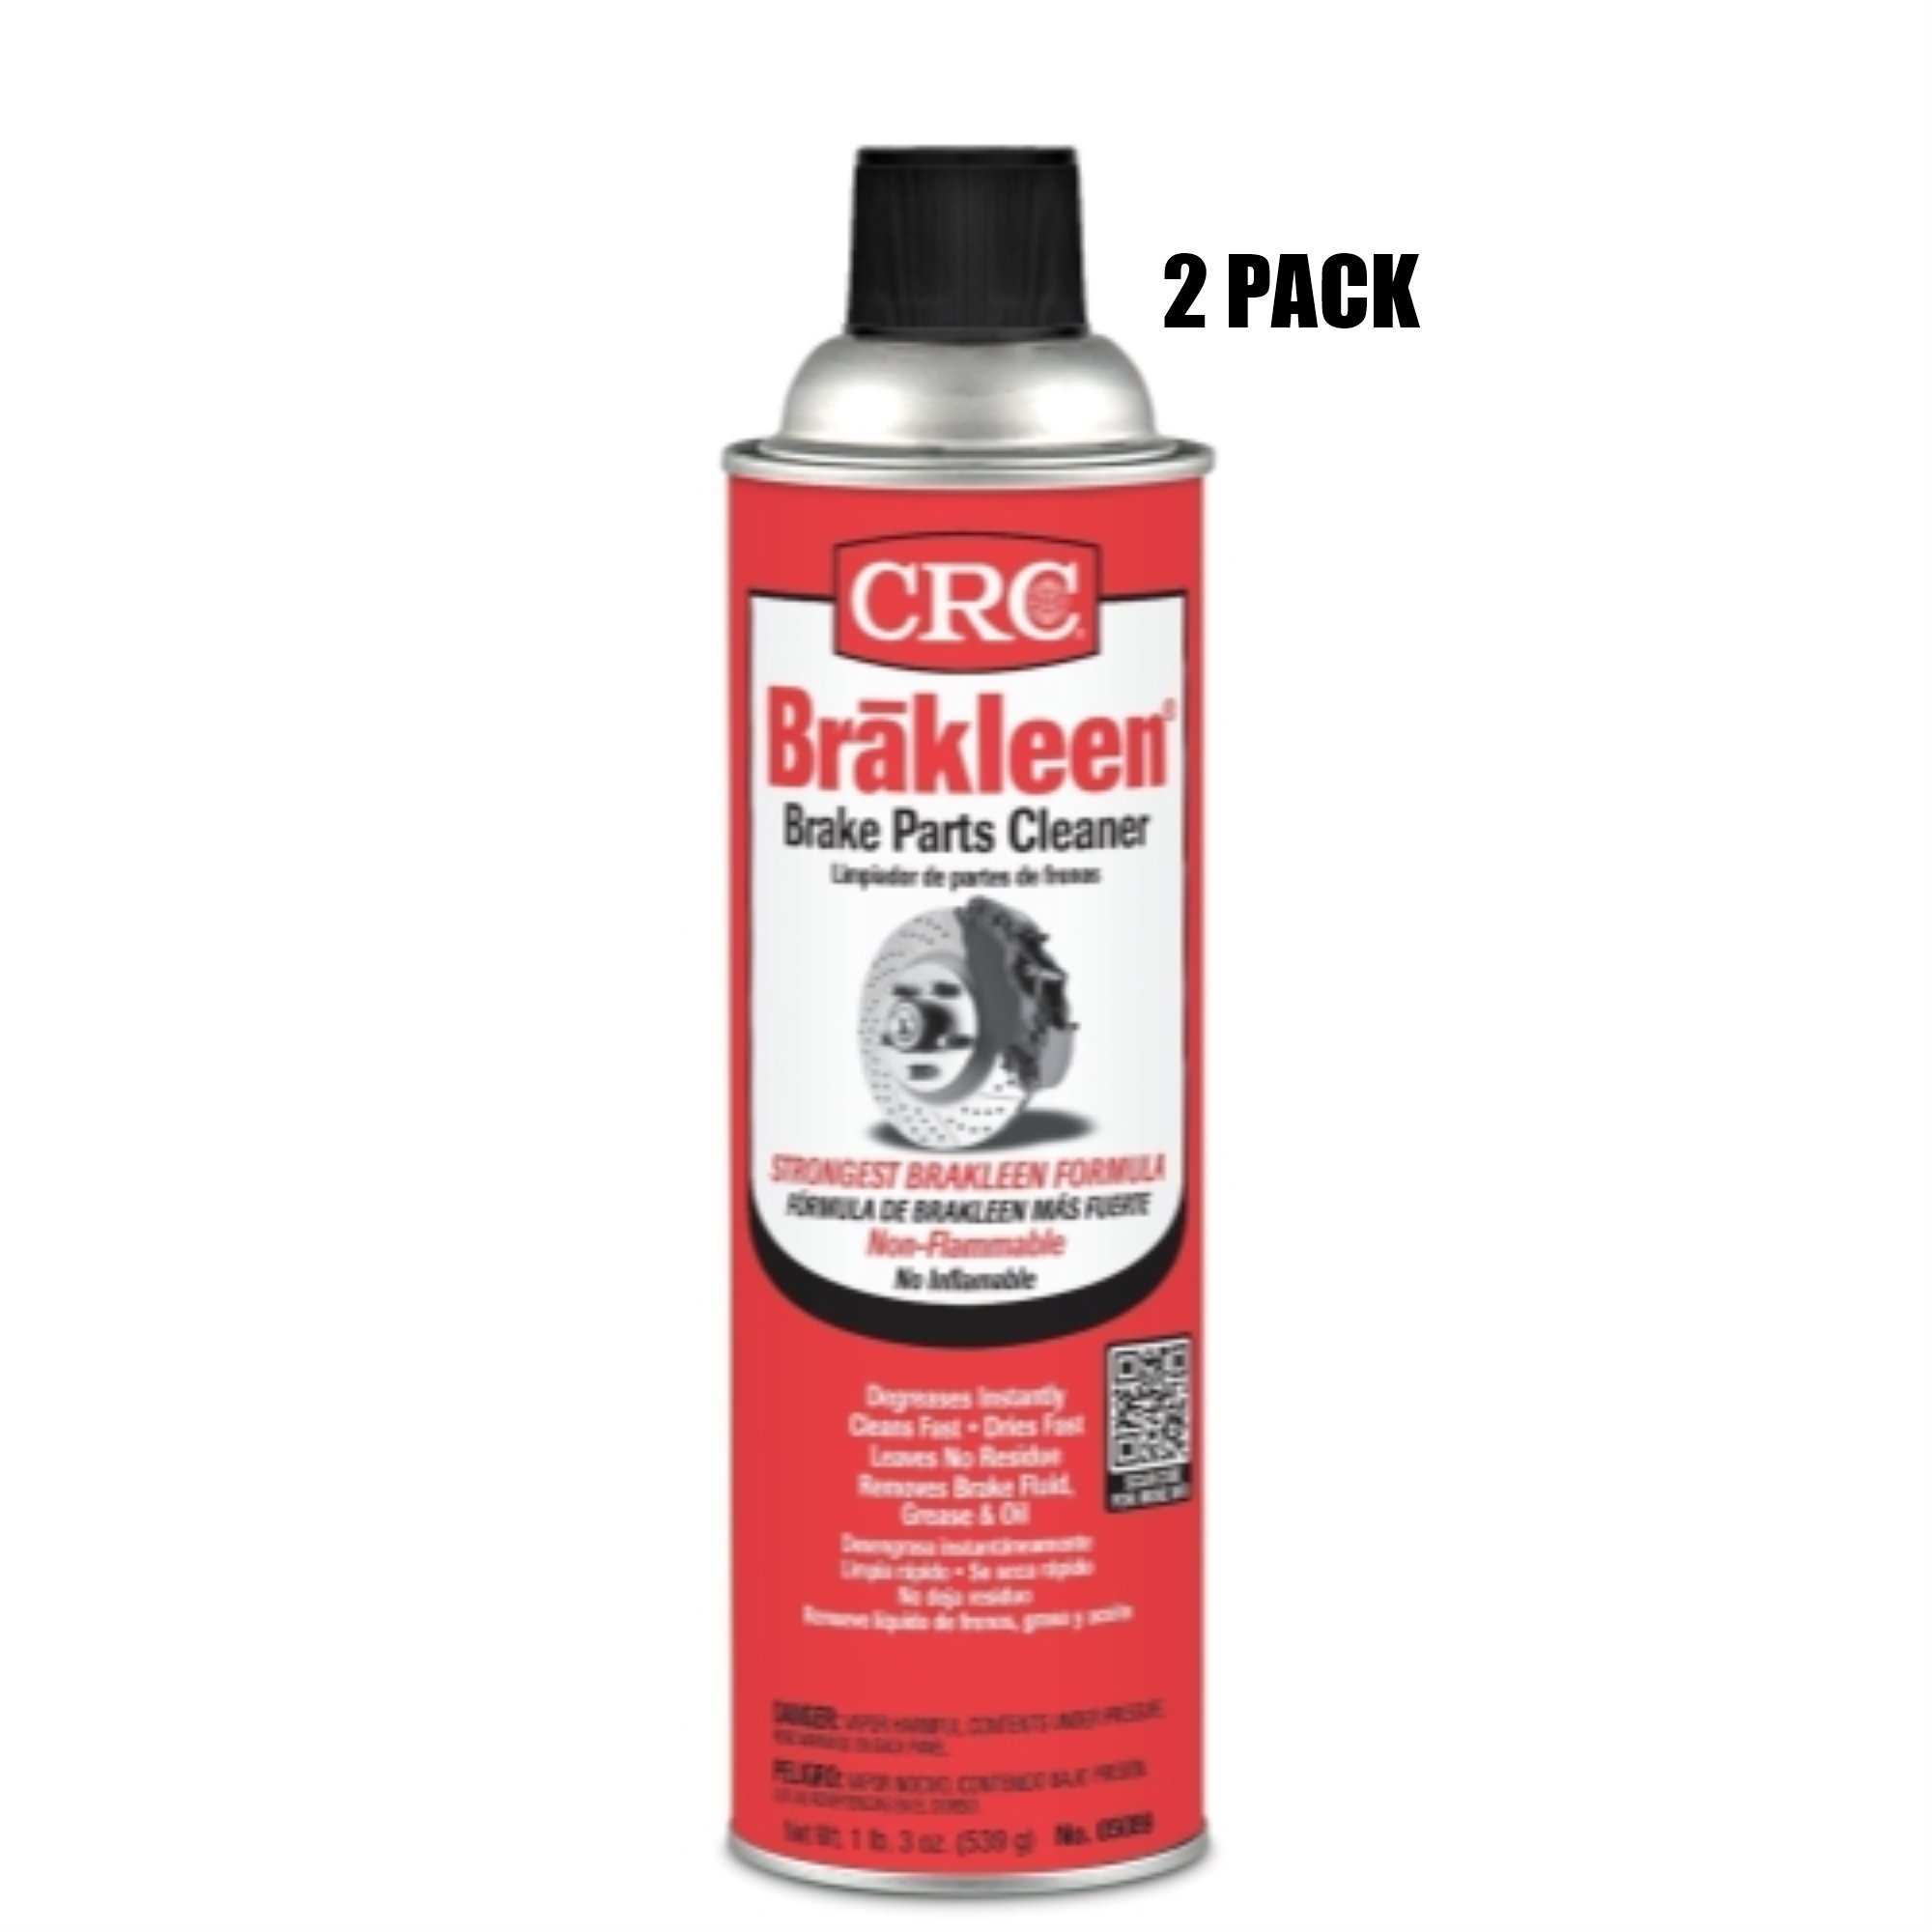 CRC Brakleen Brake Parts Cleaner - Non-Flammable (2 Pack)